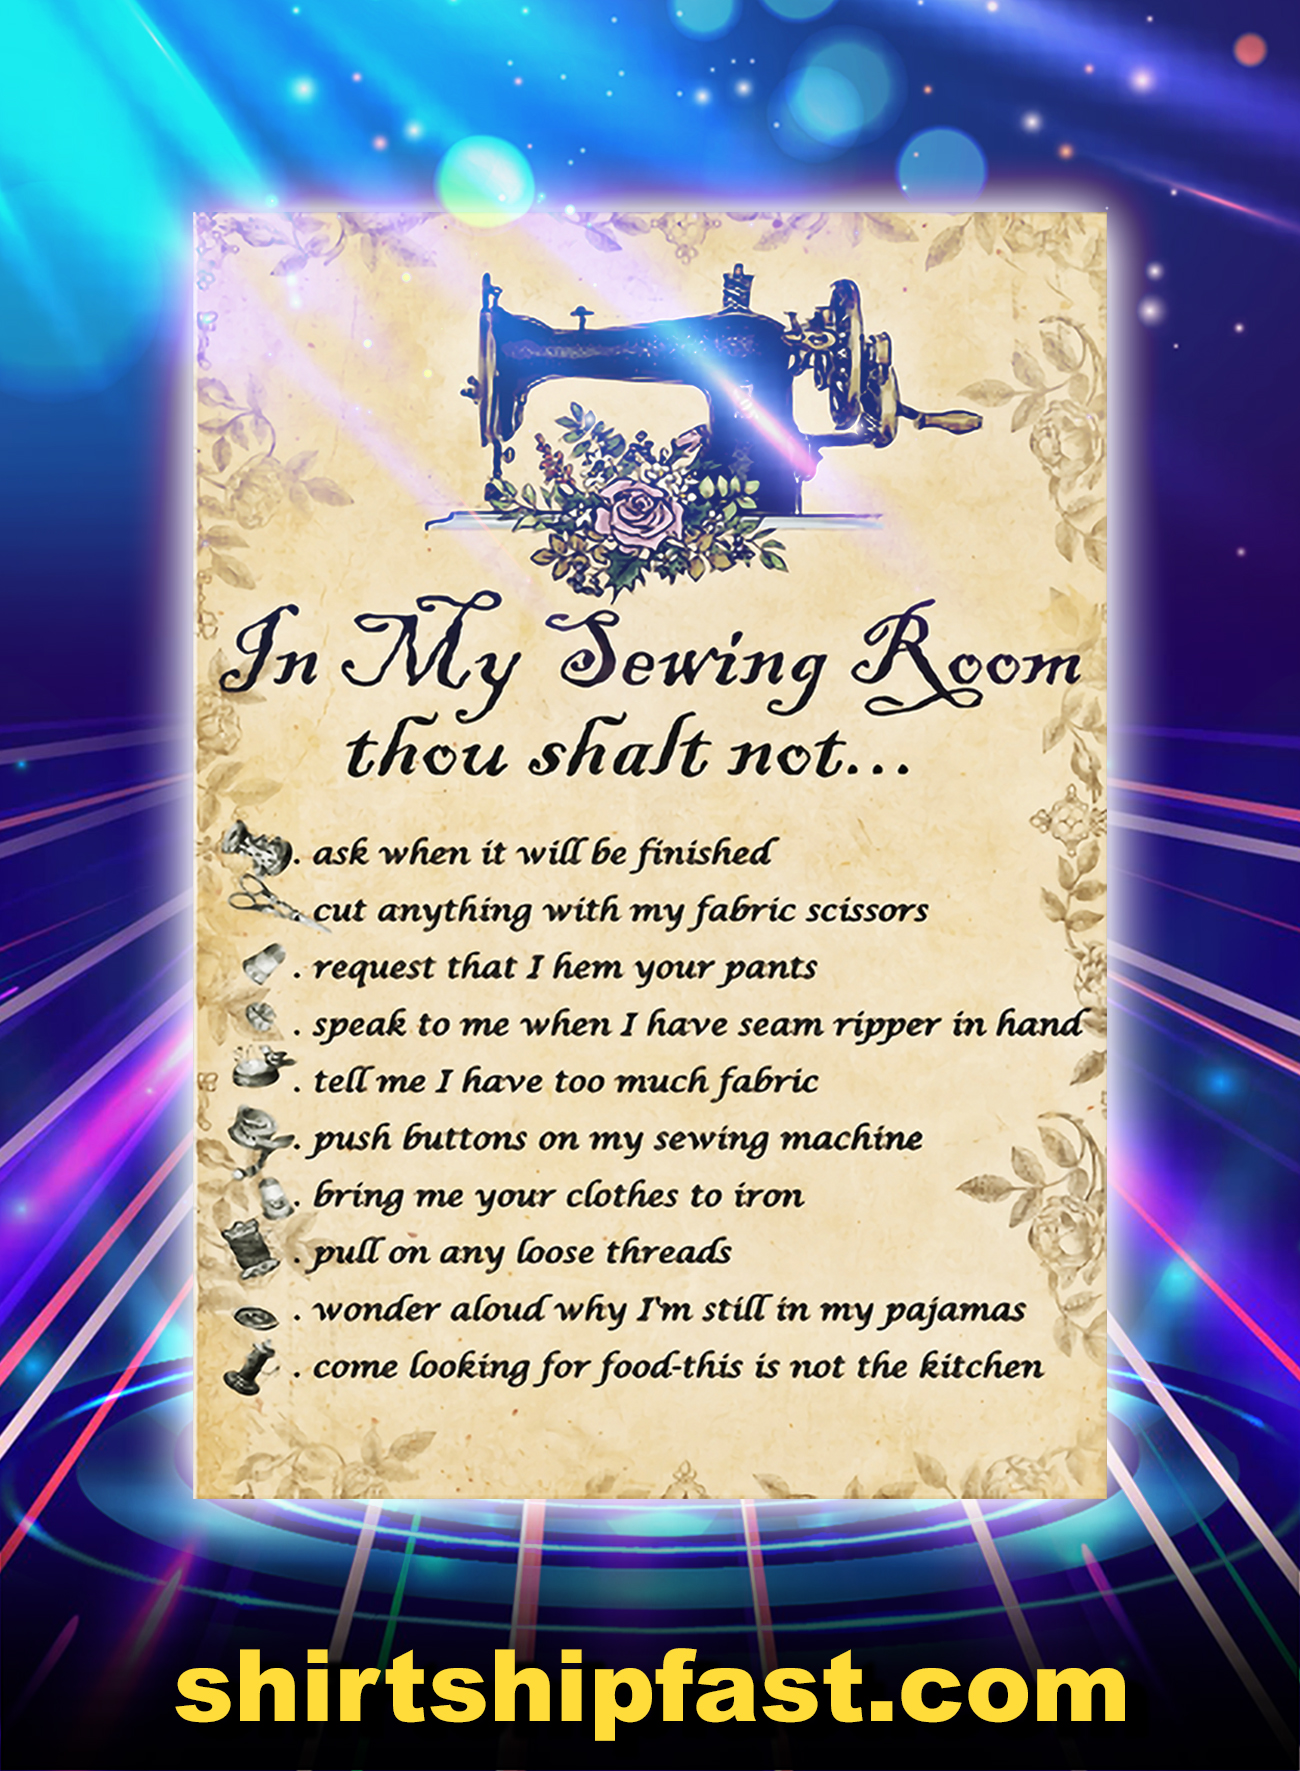 In My Sewing Room Thou Shalt Not Ask When It Will Be Finished Poster - A1